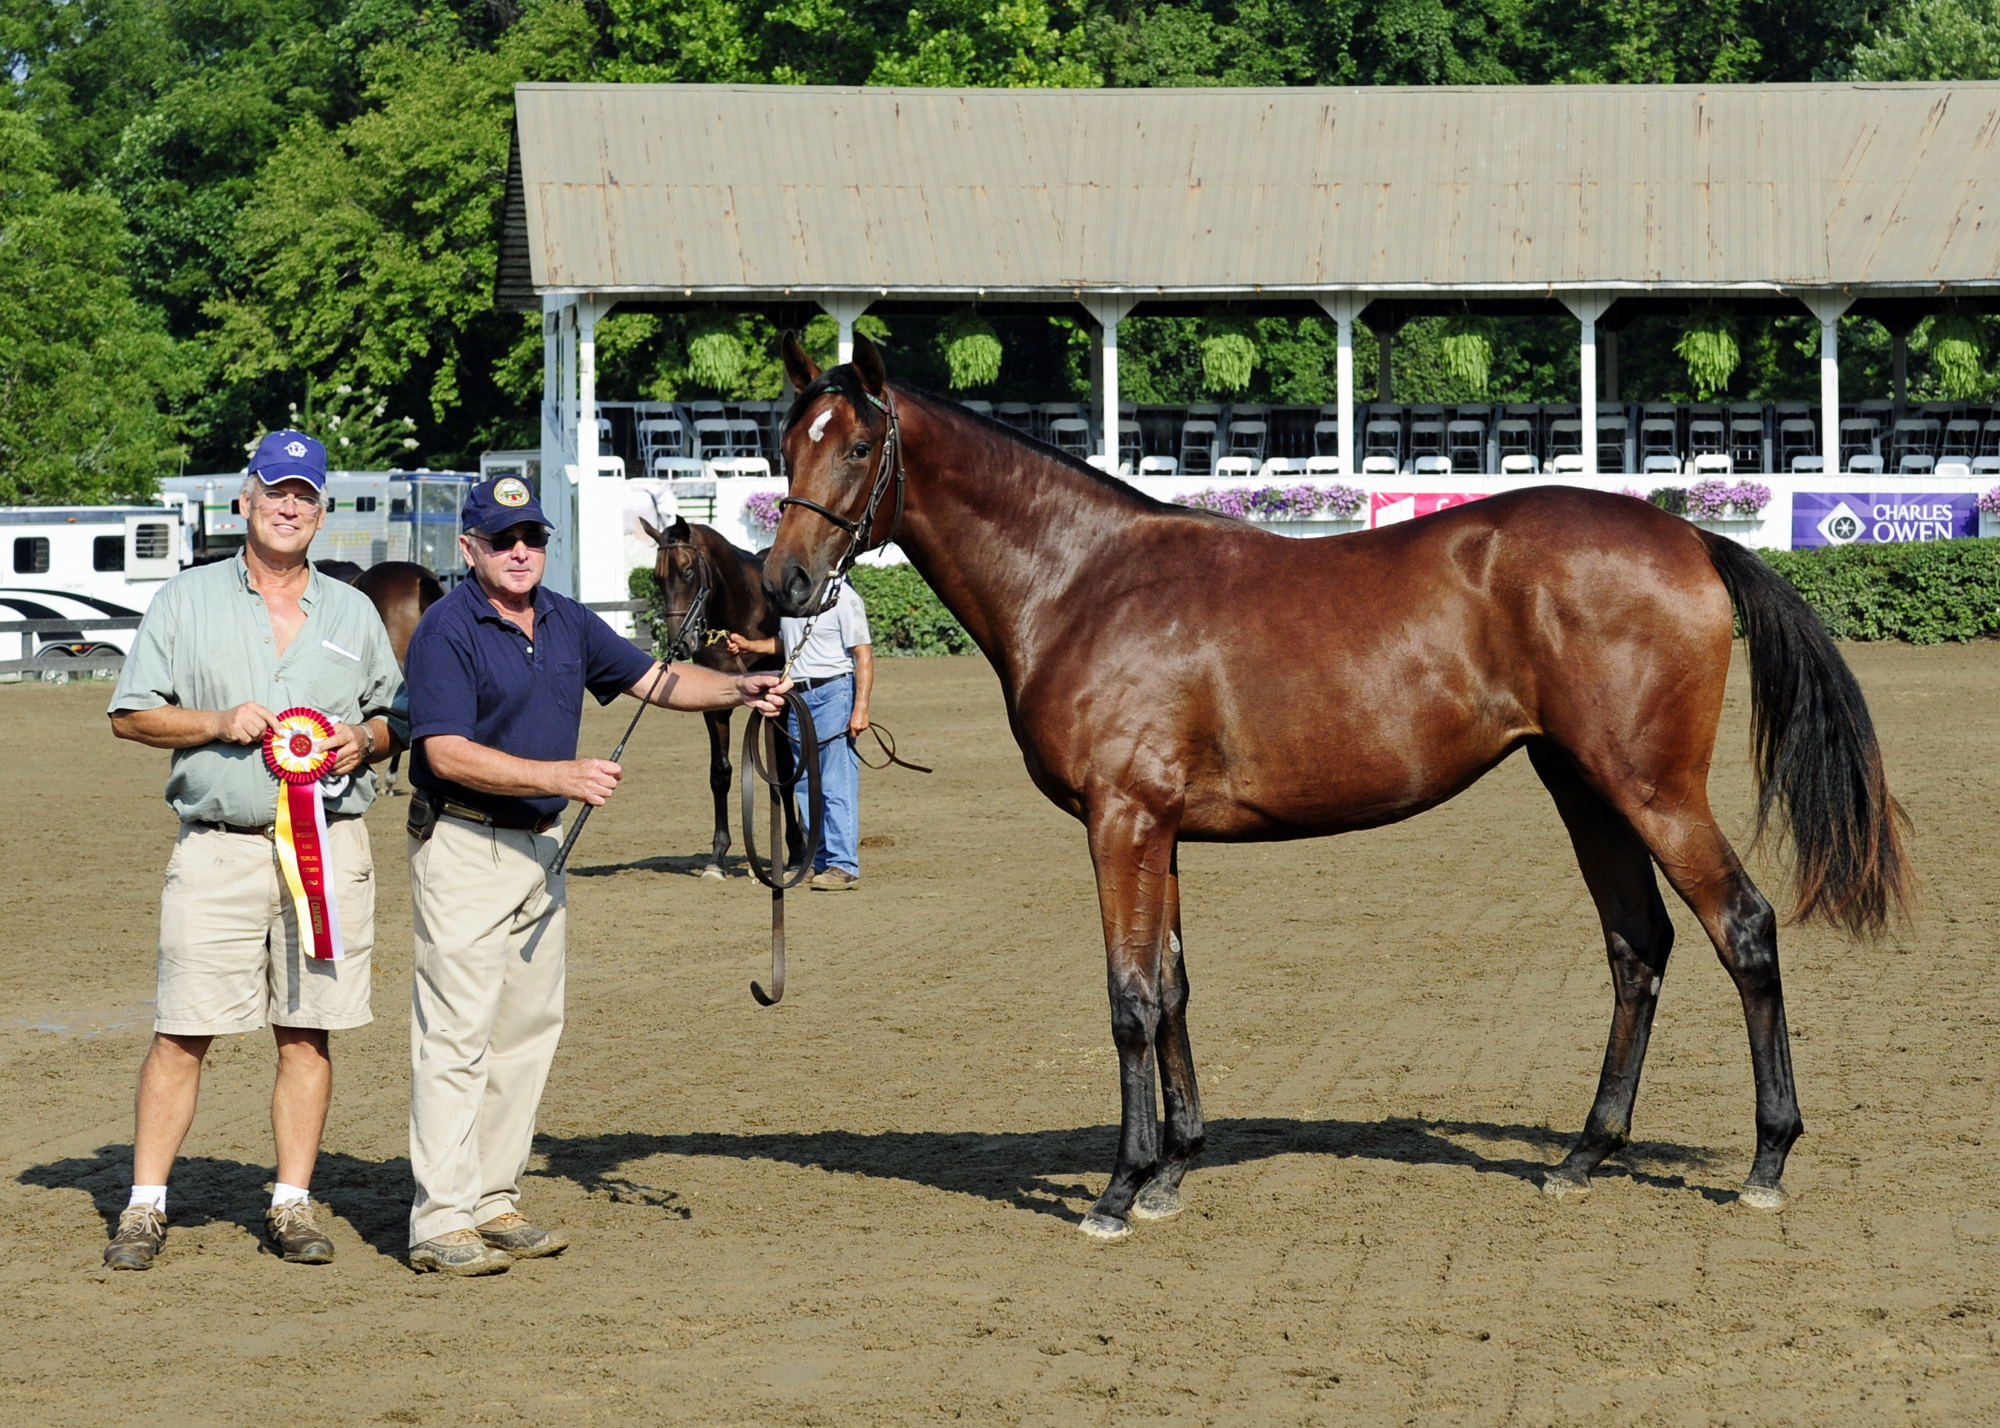 PHOTOS OF THE DAY: 2013 VBF YEARLING FUTURITY | OLD DOMINION